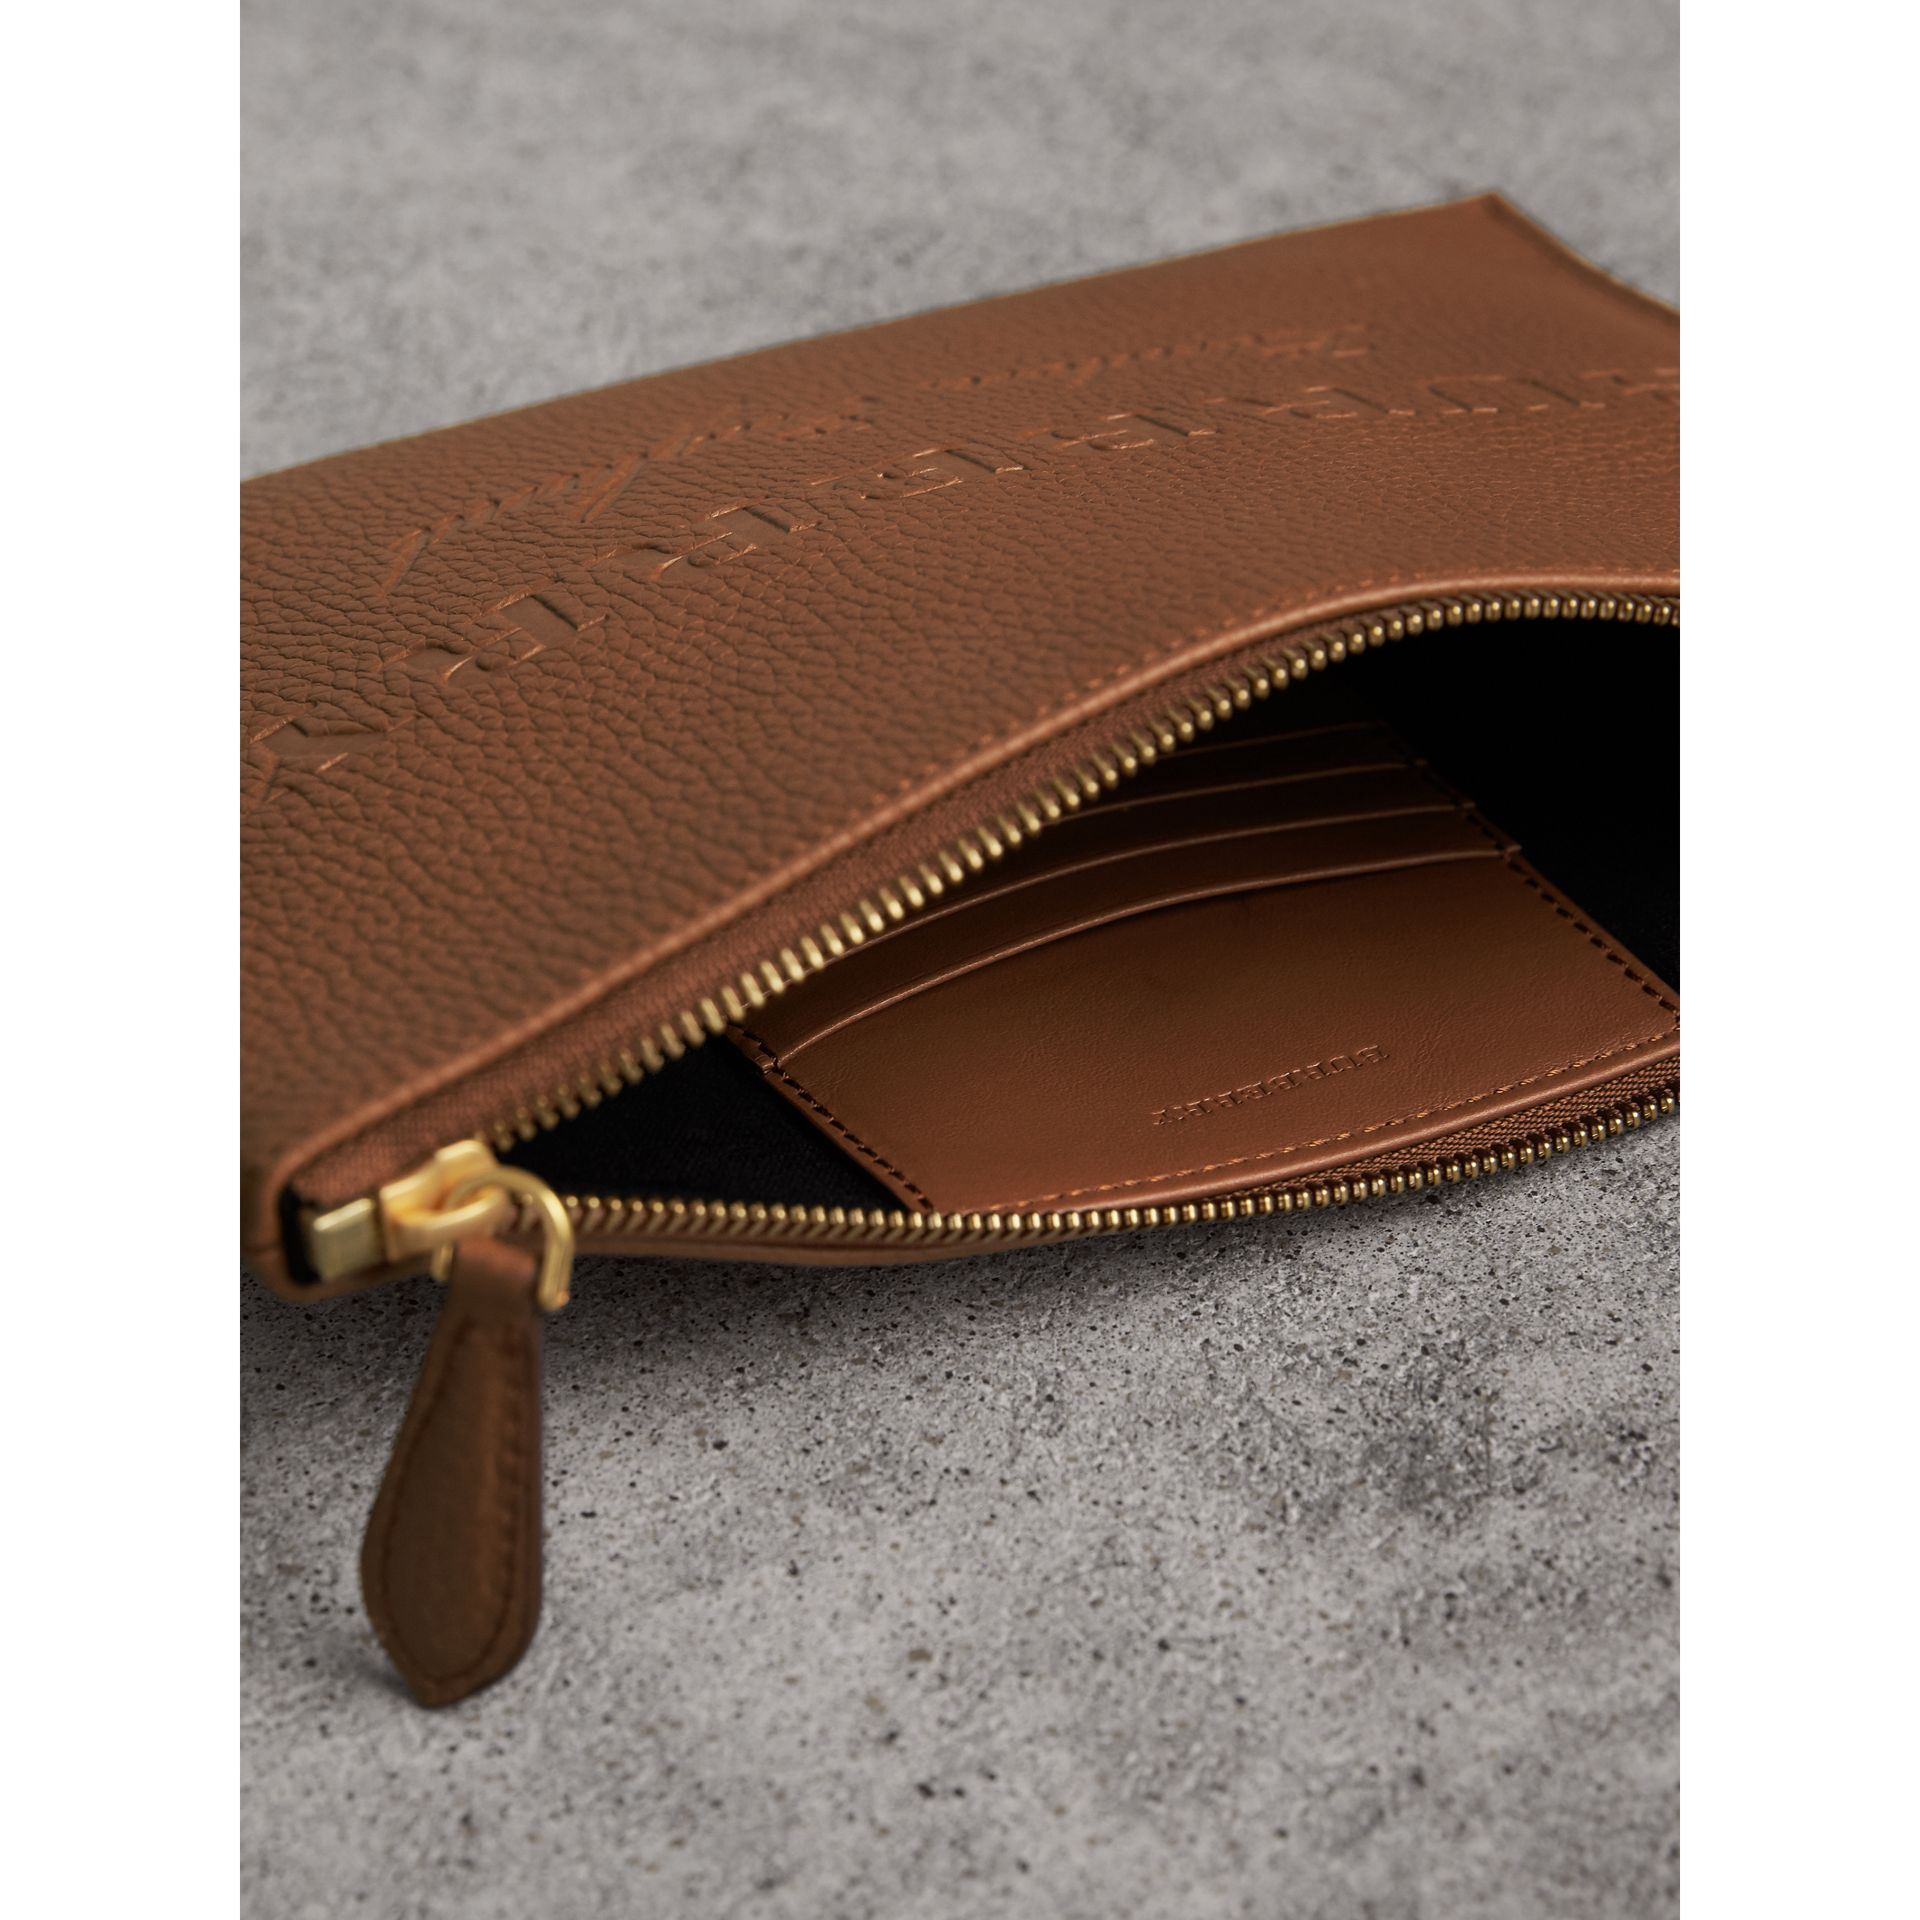 Embossed Leather Clutch Bag in Chestnut Brown - Women | Burberry Singapore - gallery image 5